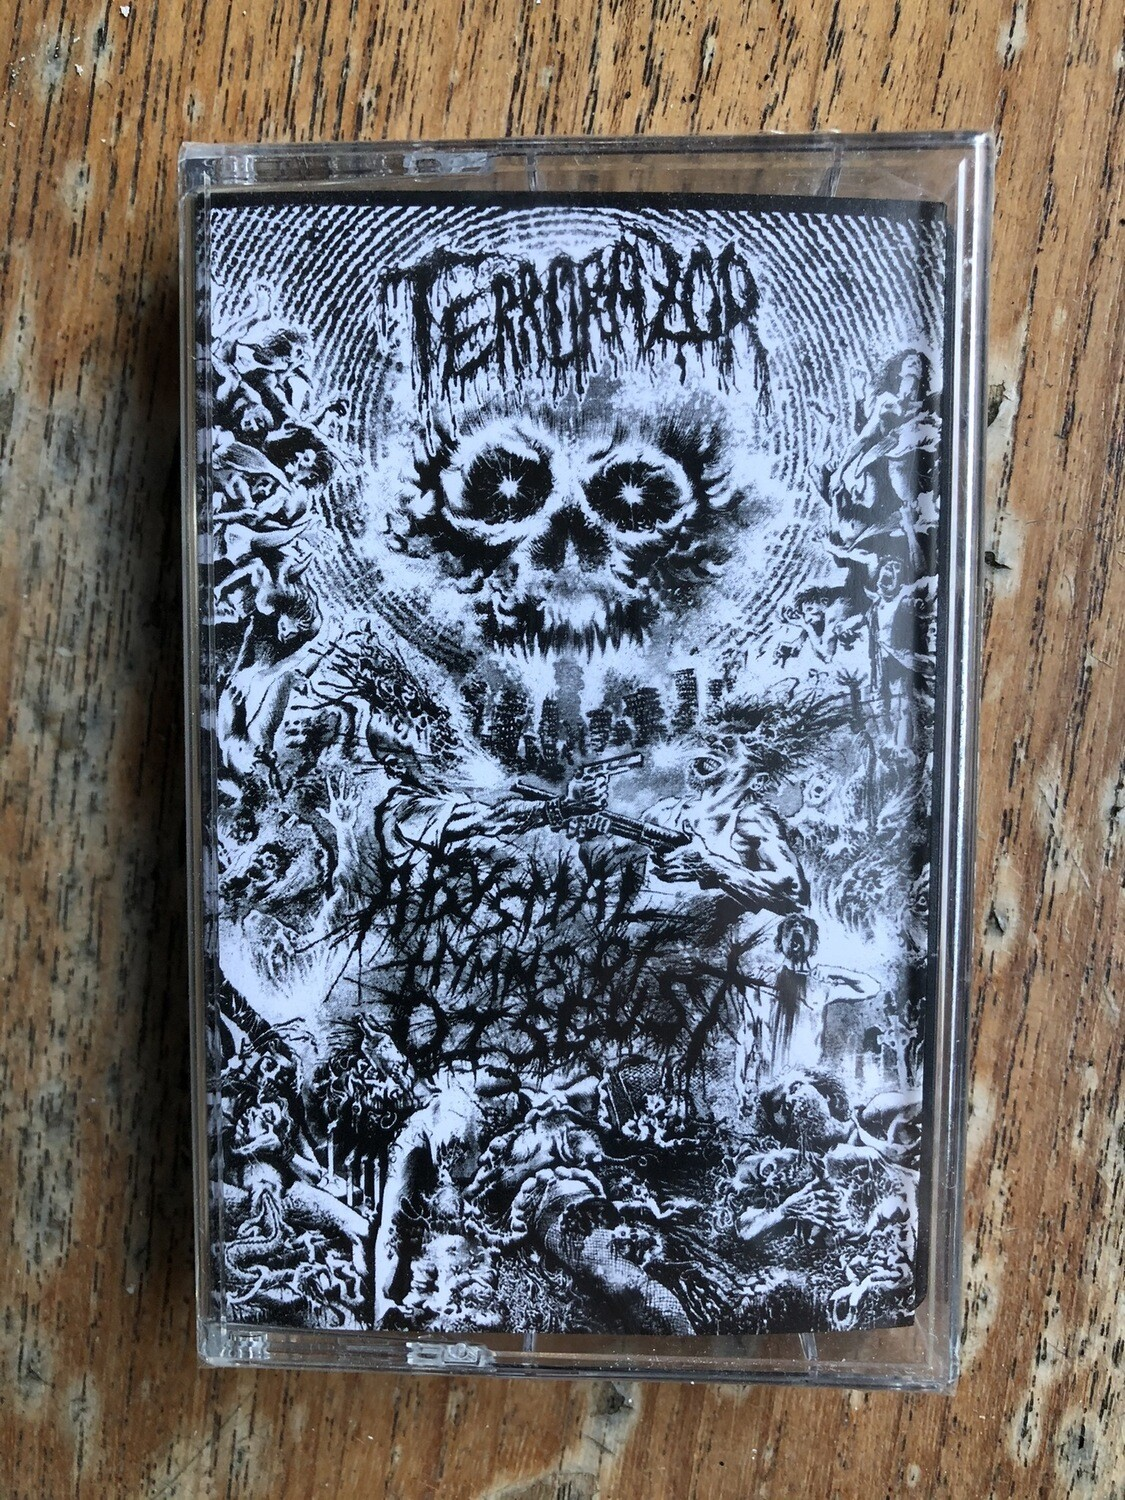 TERRORAZOR - Abysmal hymns of disgust MC